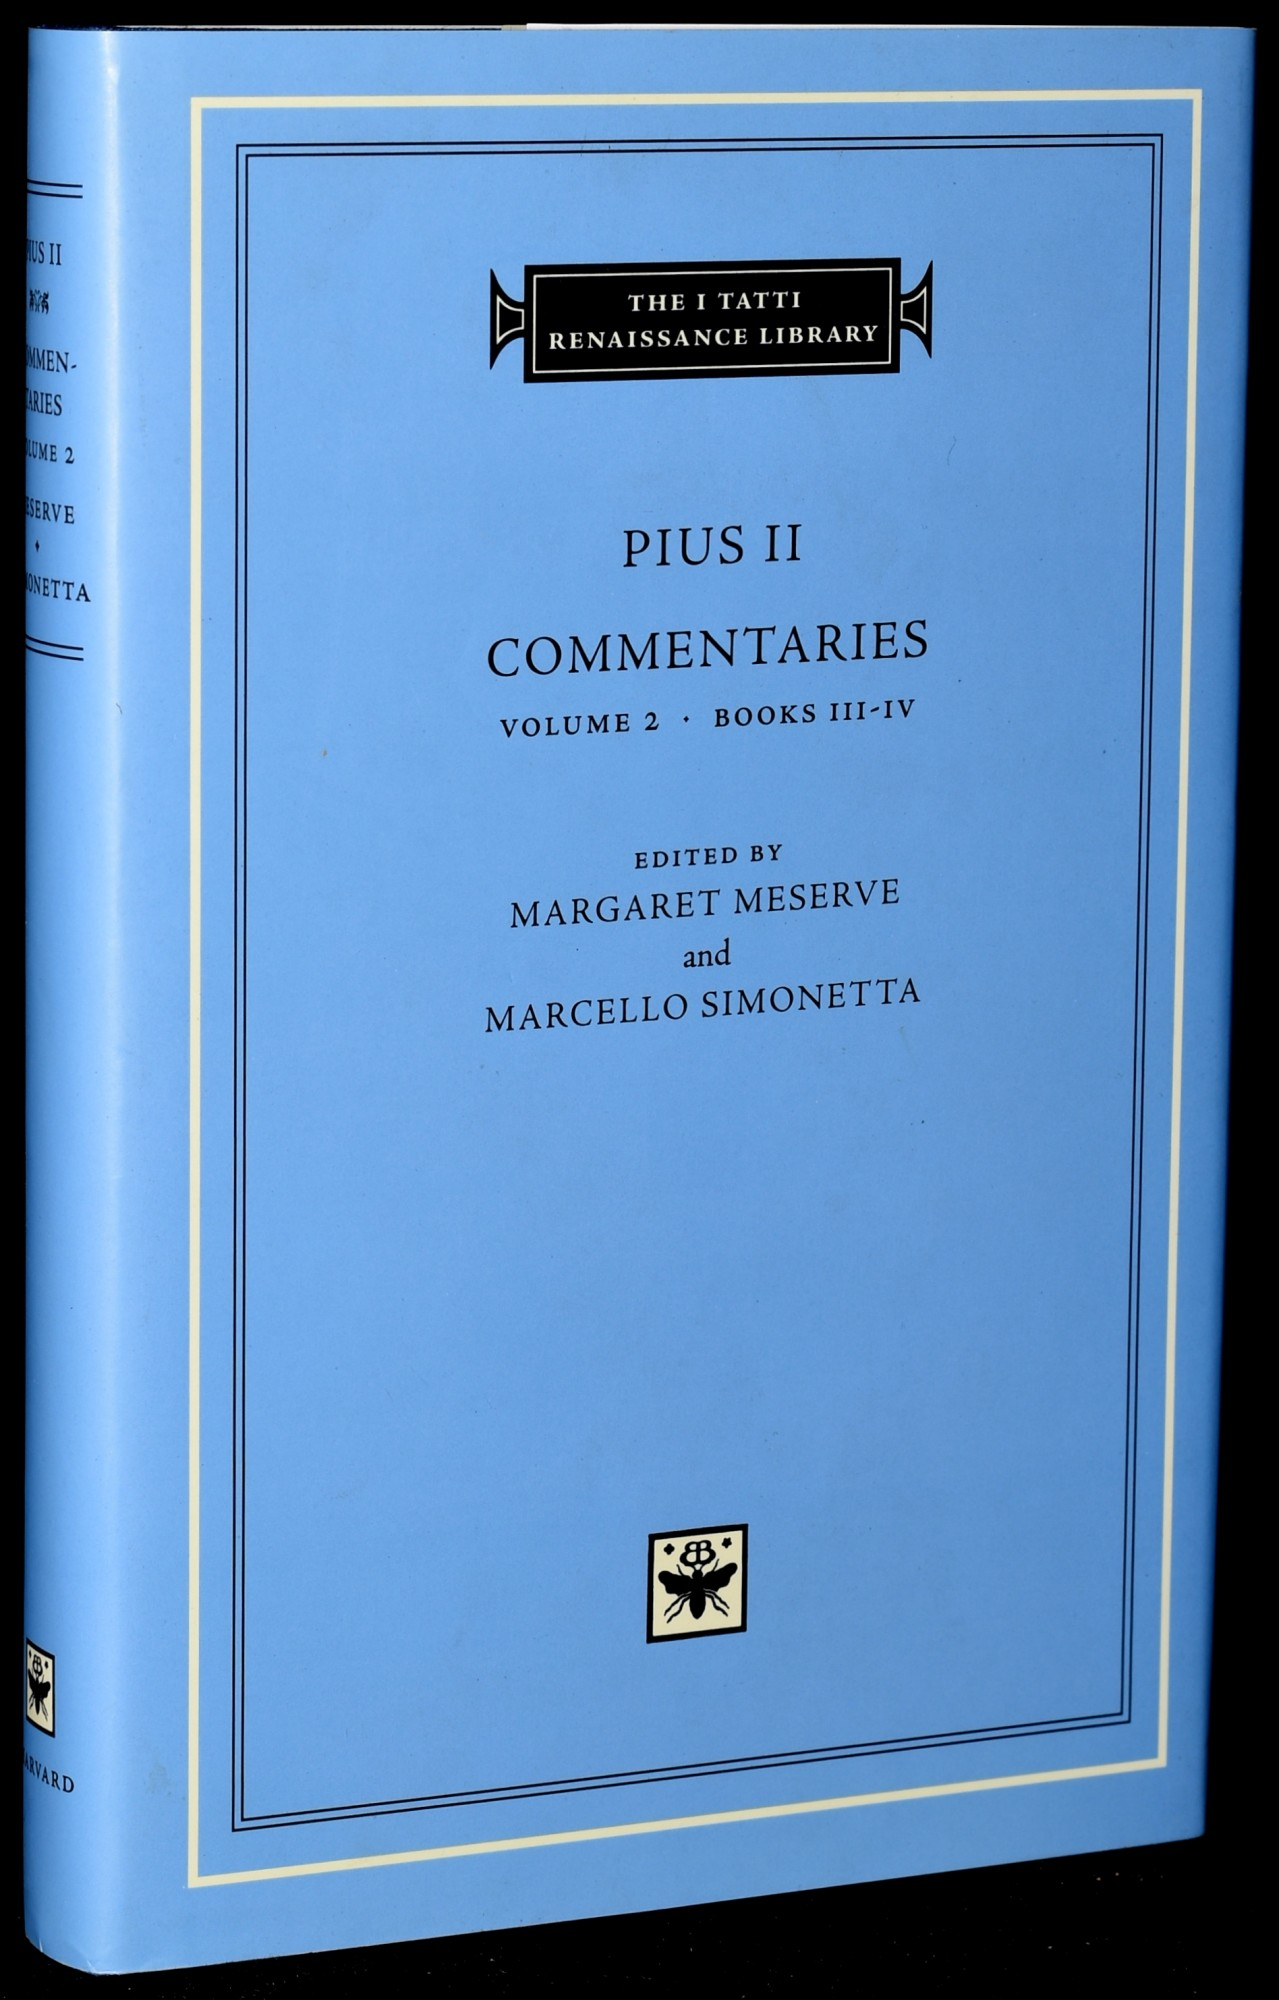 Books III-IV Volume 2 Commentaries